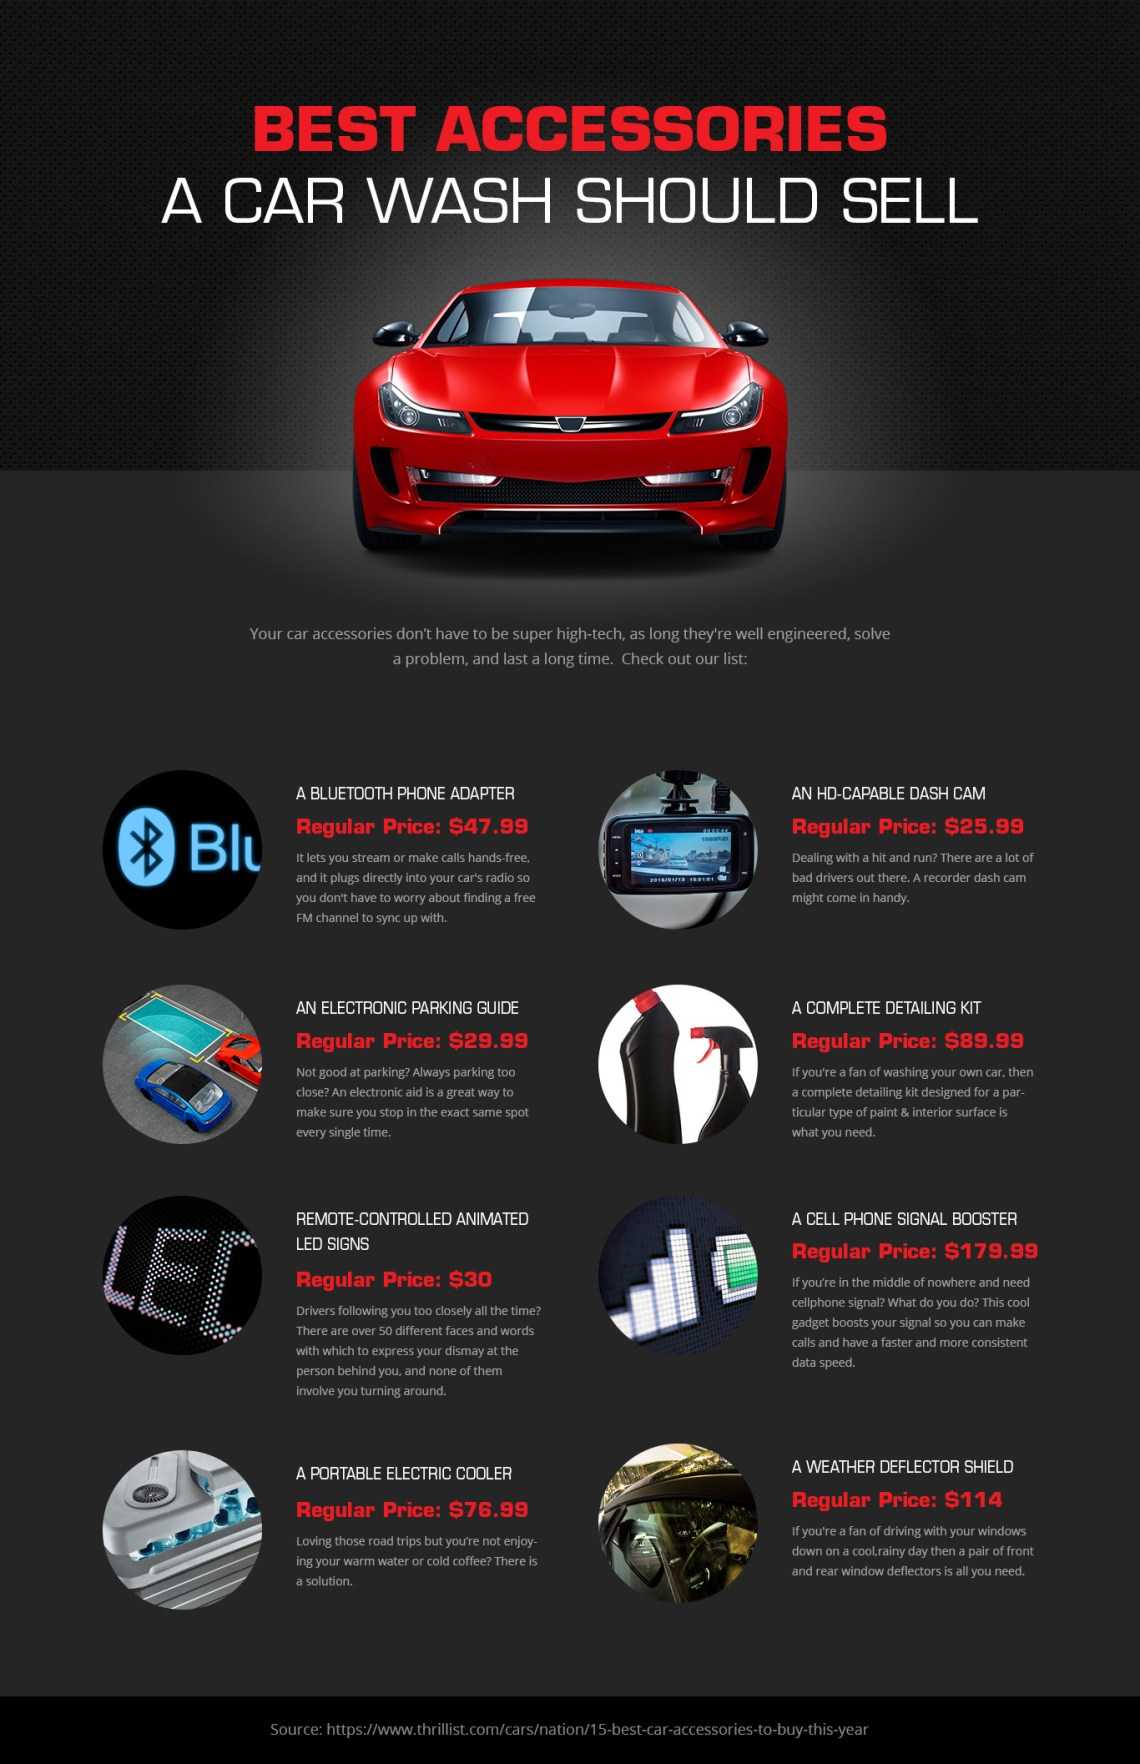 best-accessories-a-car-wash-should-sell-infographic